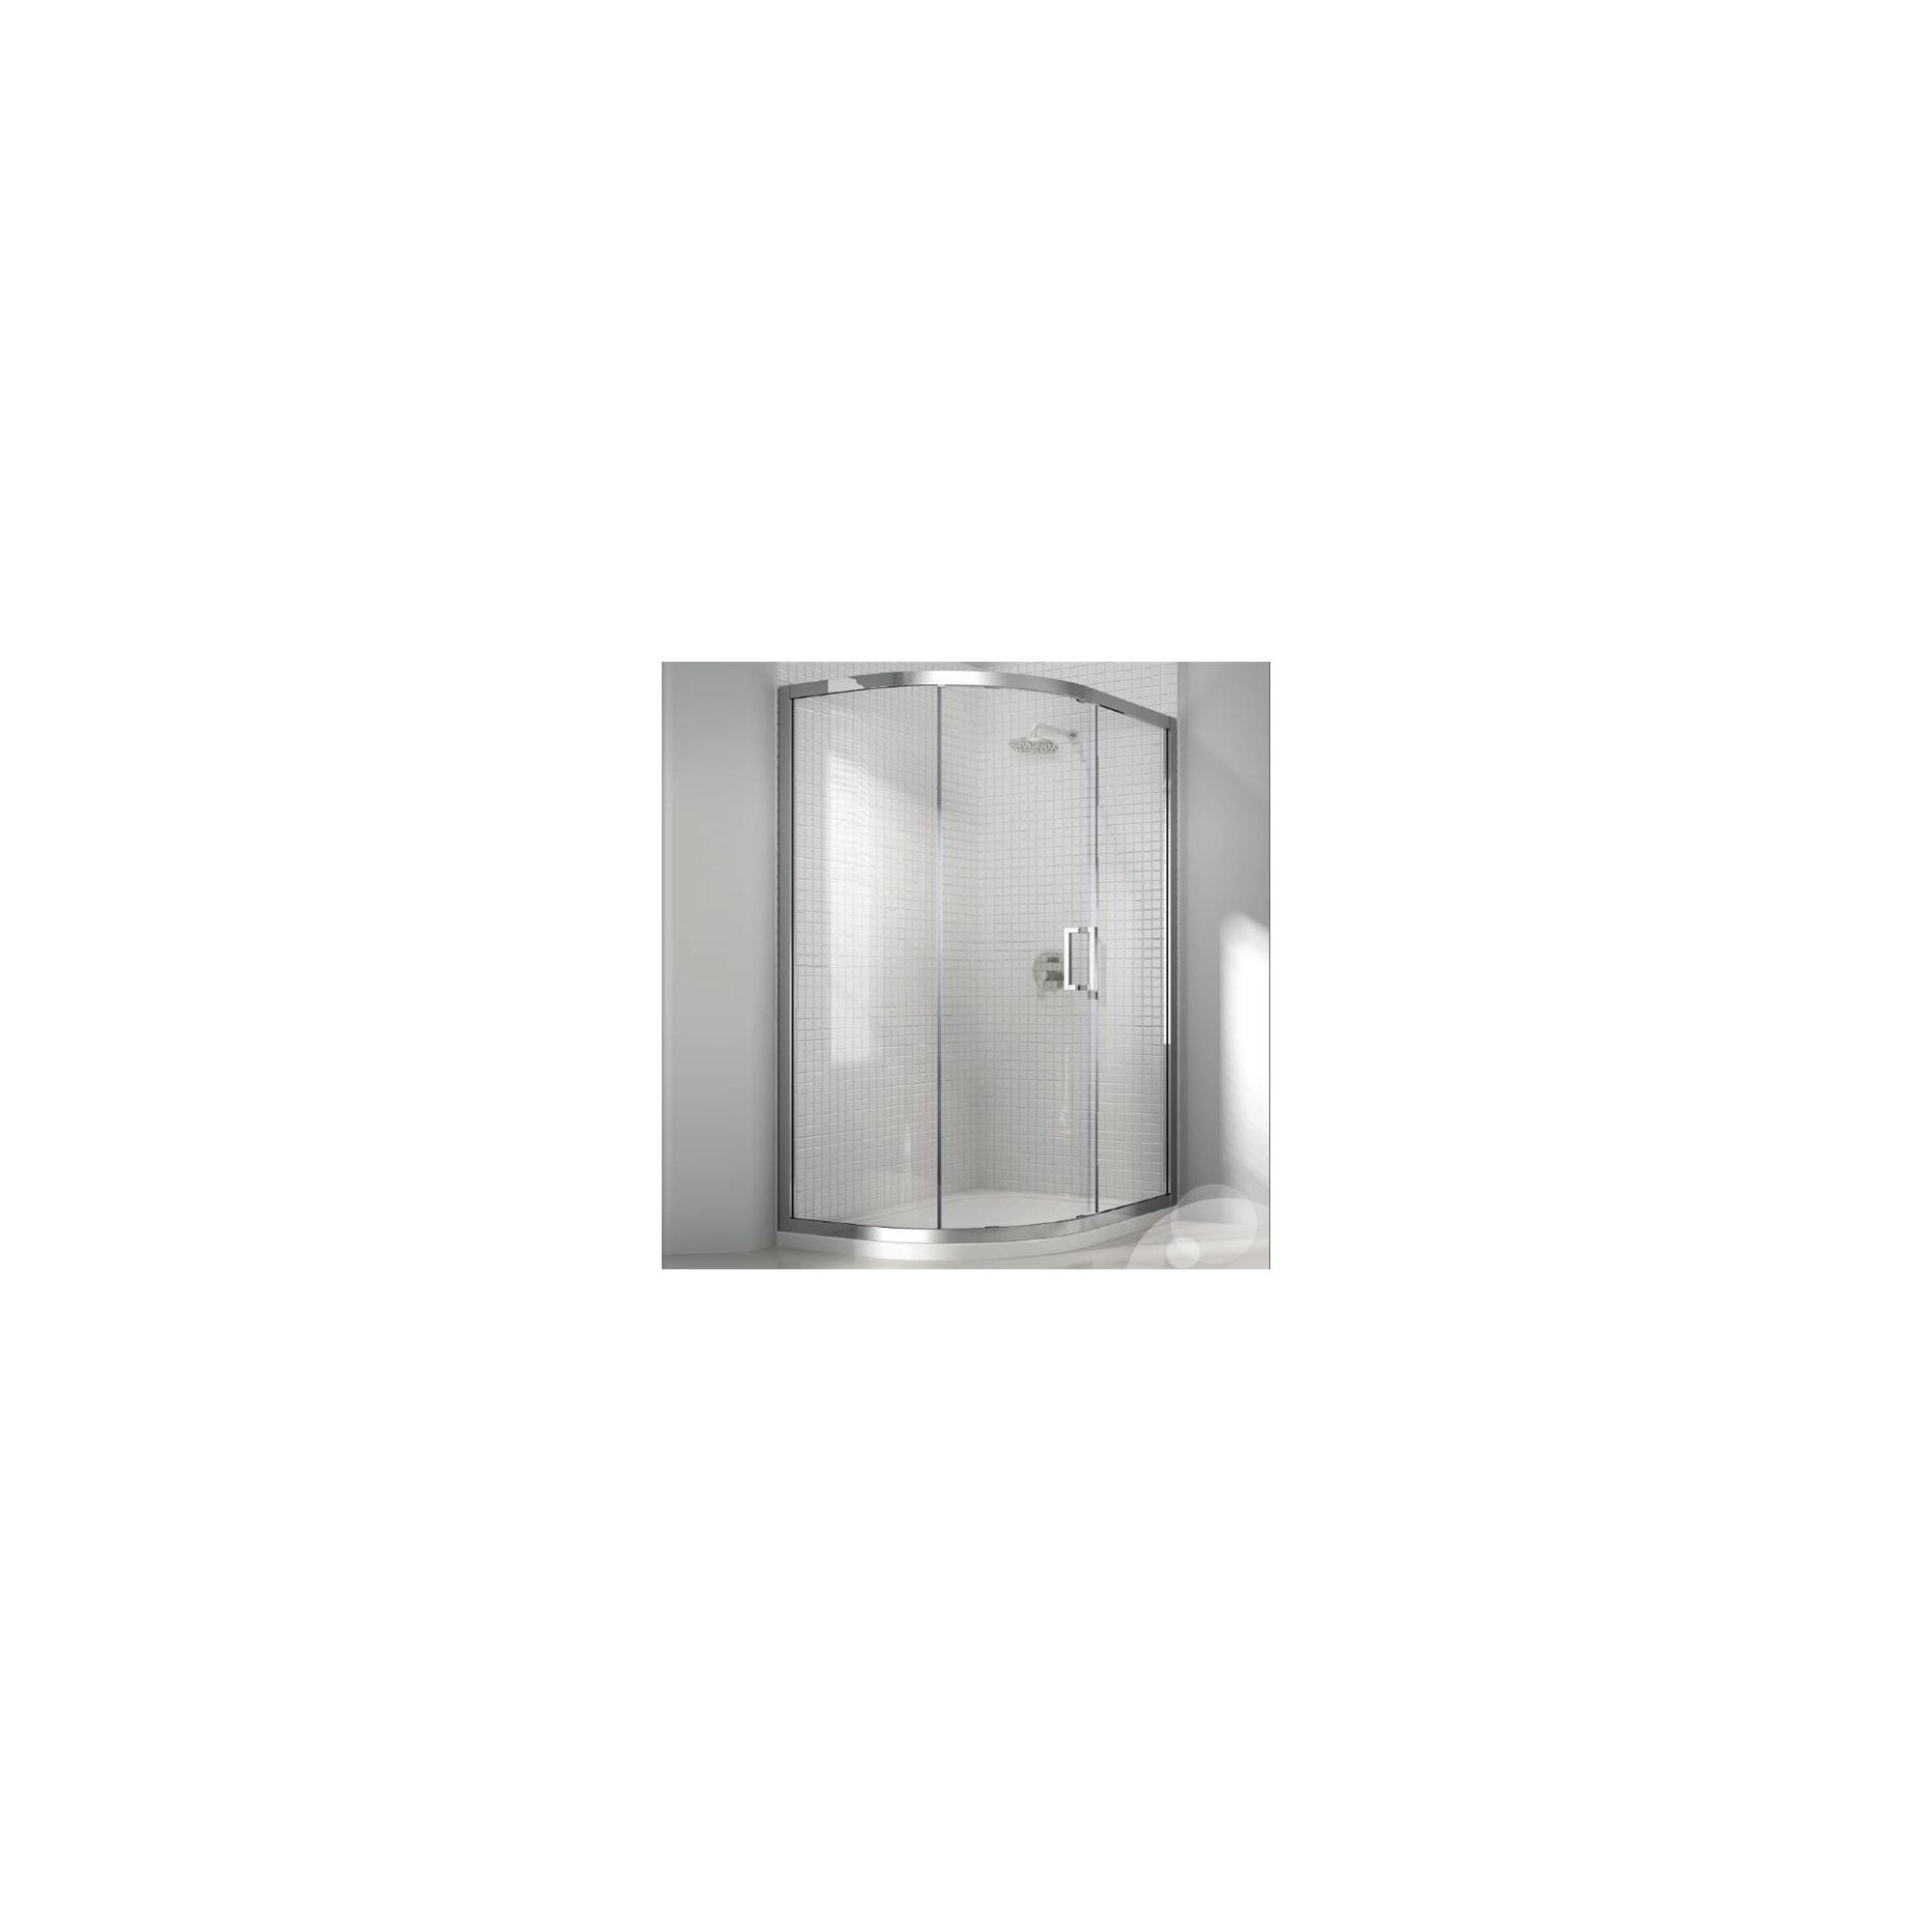 Merlyn Vivid Eight Offset Quadrant Shower Door, 900mm x 760mm, 8mm Glass at Tesco Direct